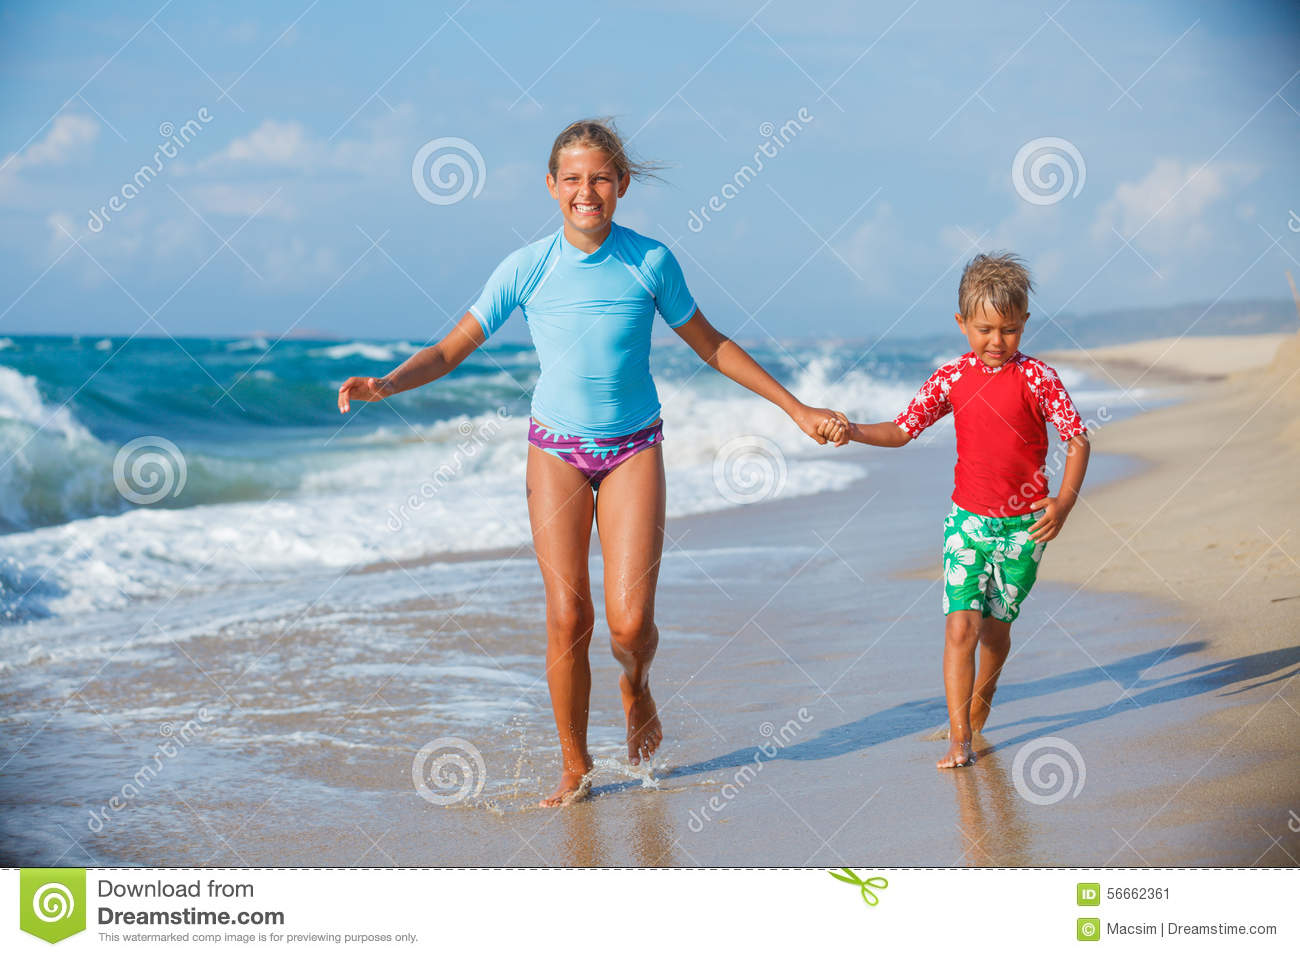 Kids Running At Beach